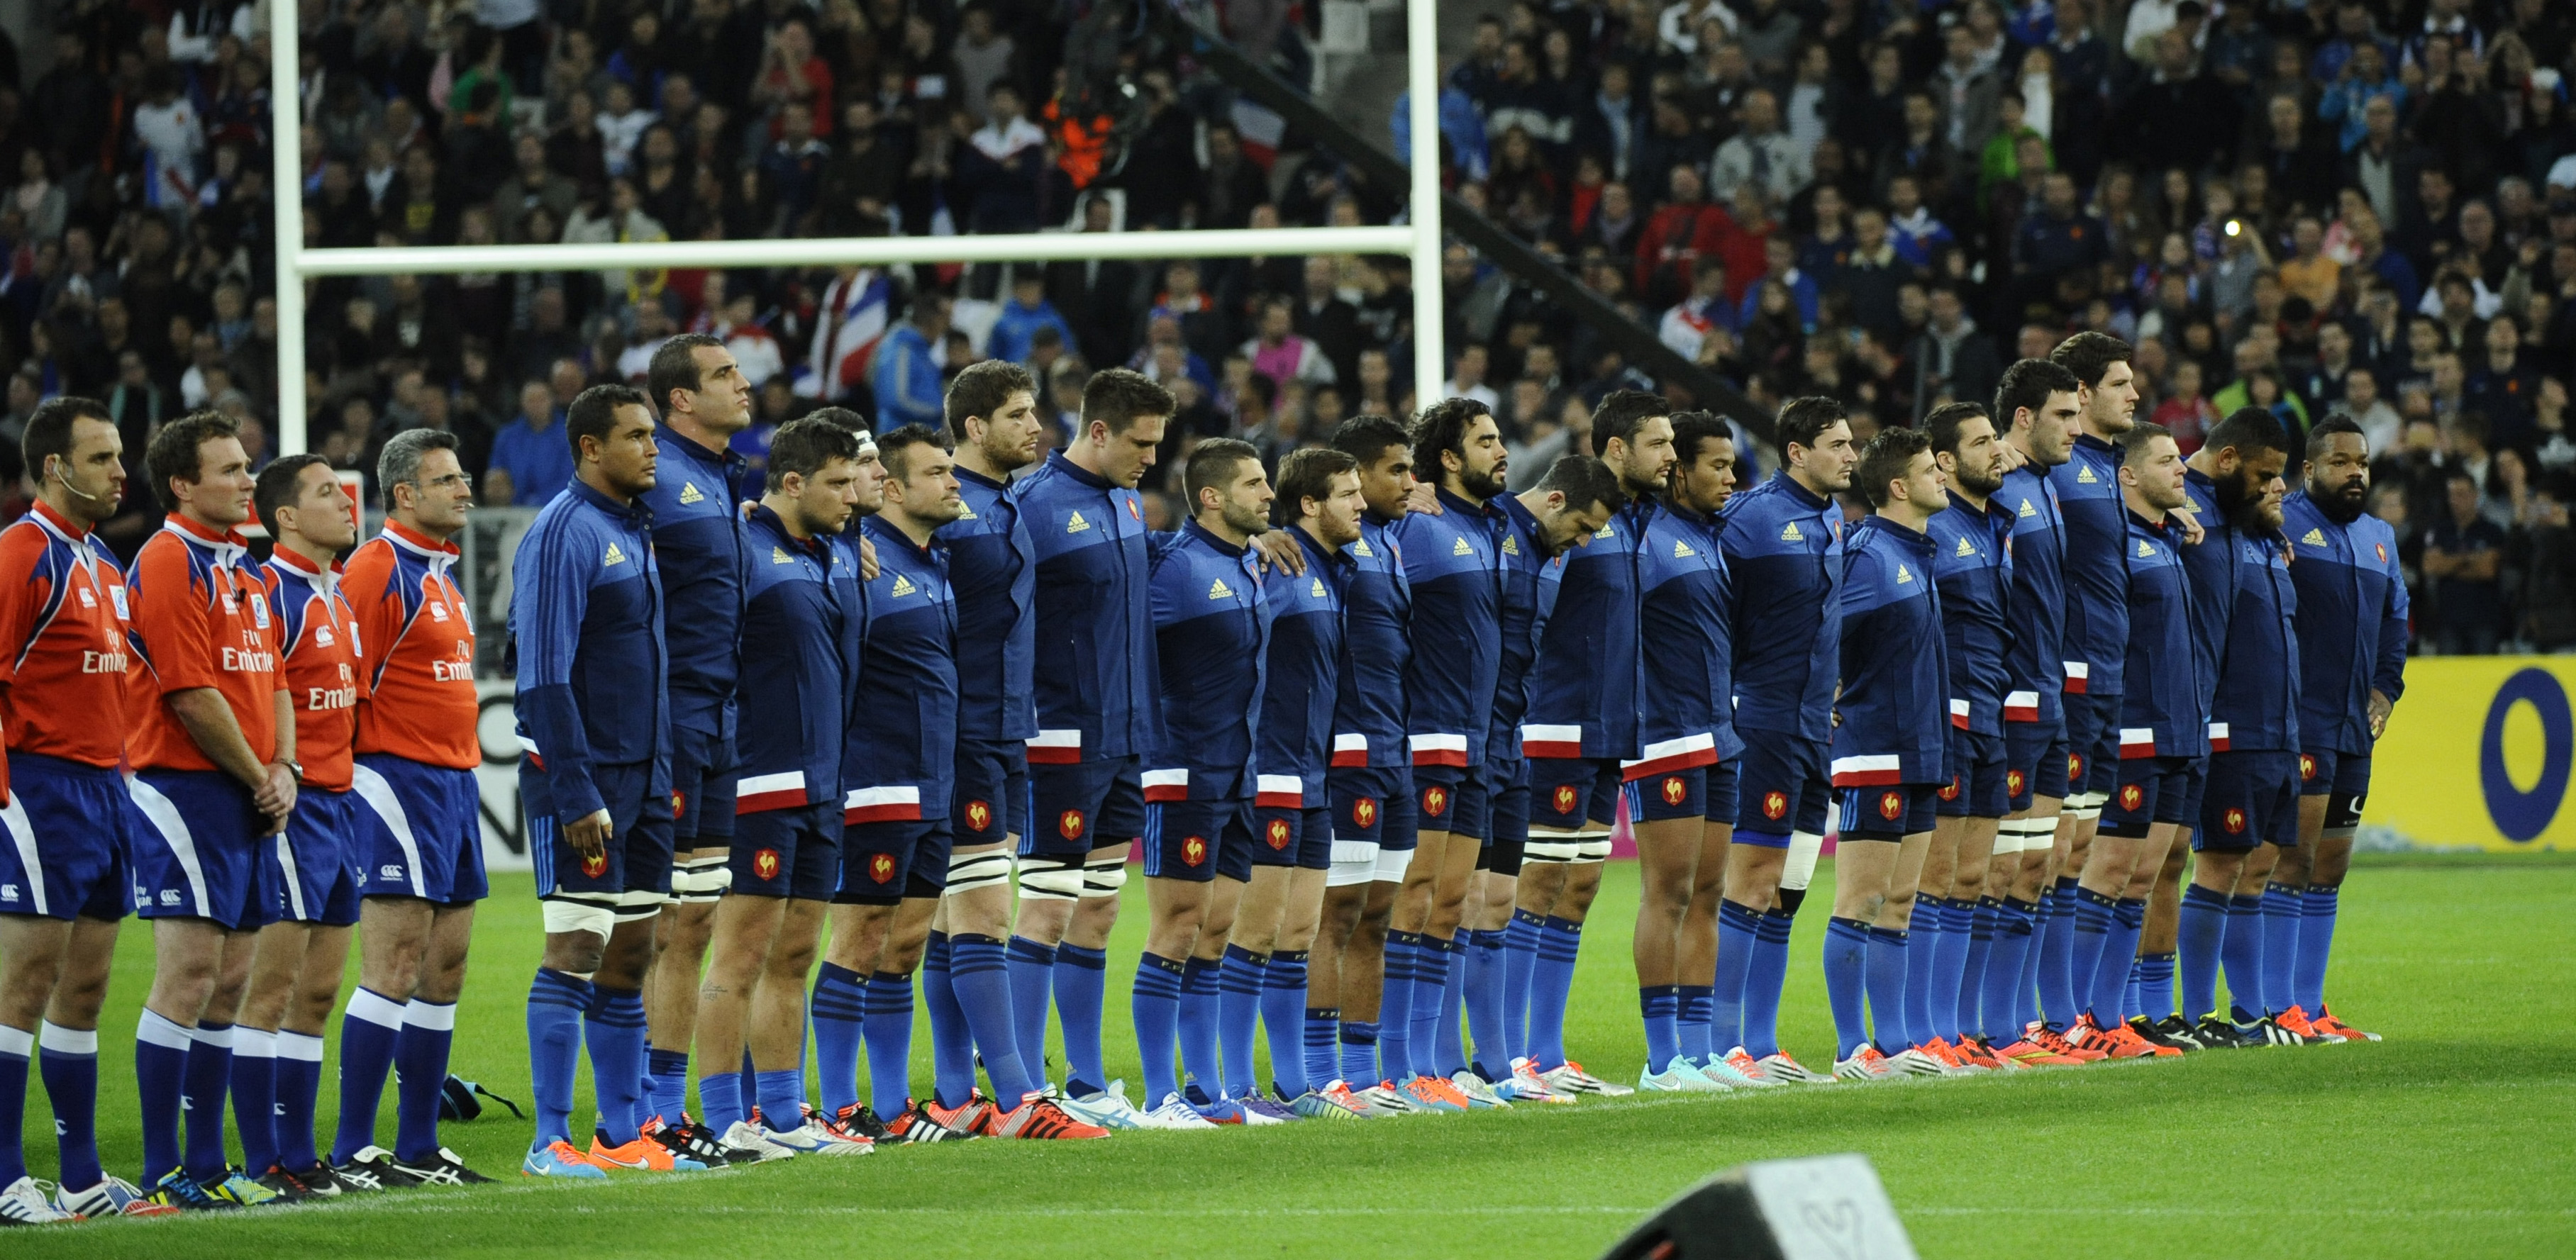 Rugby france vs fidji test match marseille 08 11 2014 coupe du monde 2018 football - Programme coupe du monde de rugby ...